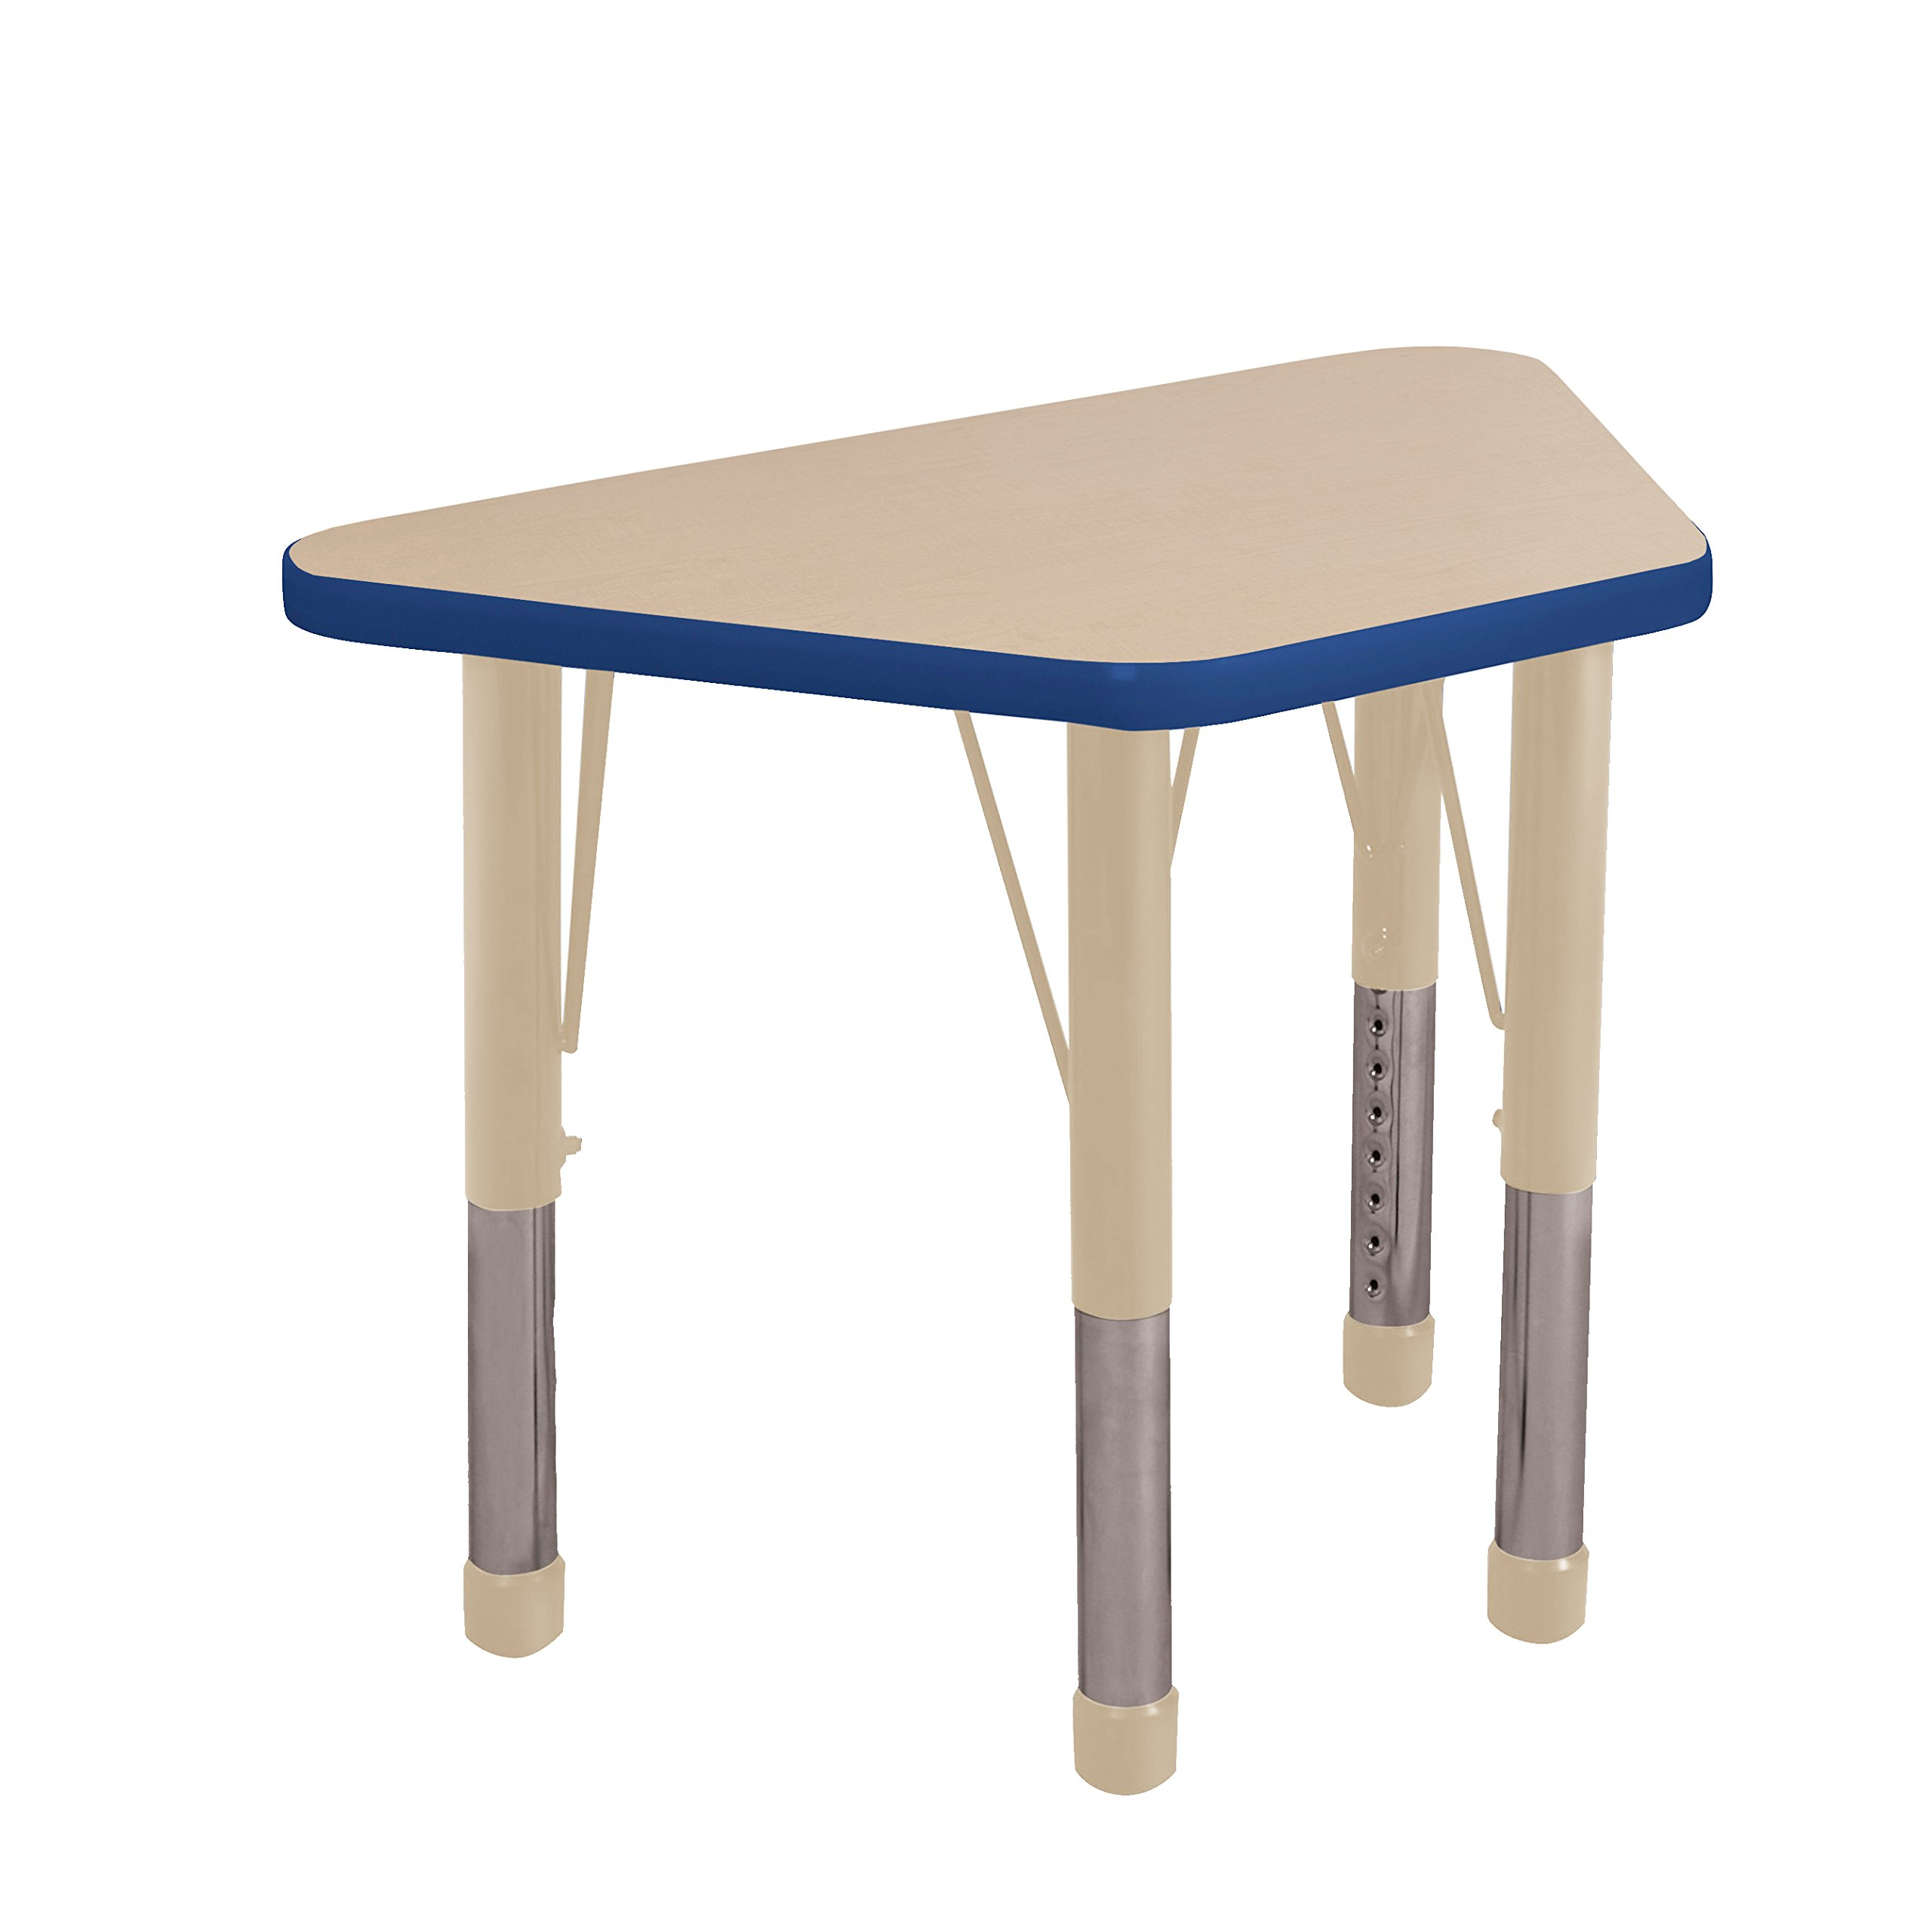 ECR4Kids Everyday T-Mold 18'' x 30'' Trapezoid Activity School Table, Chunky Legs, Adjustable Height 15-24 inch (Maple/Blue/Sand)